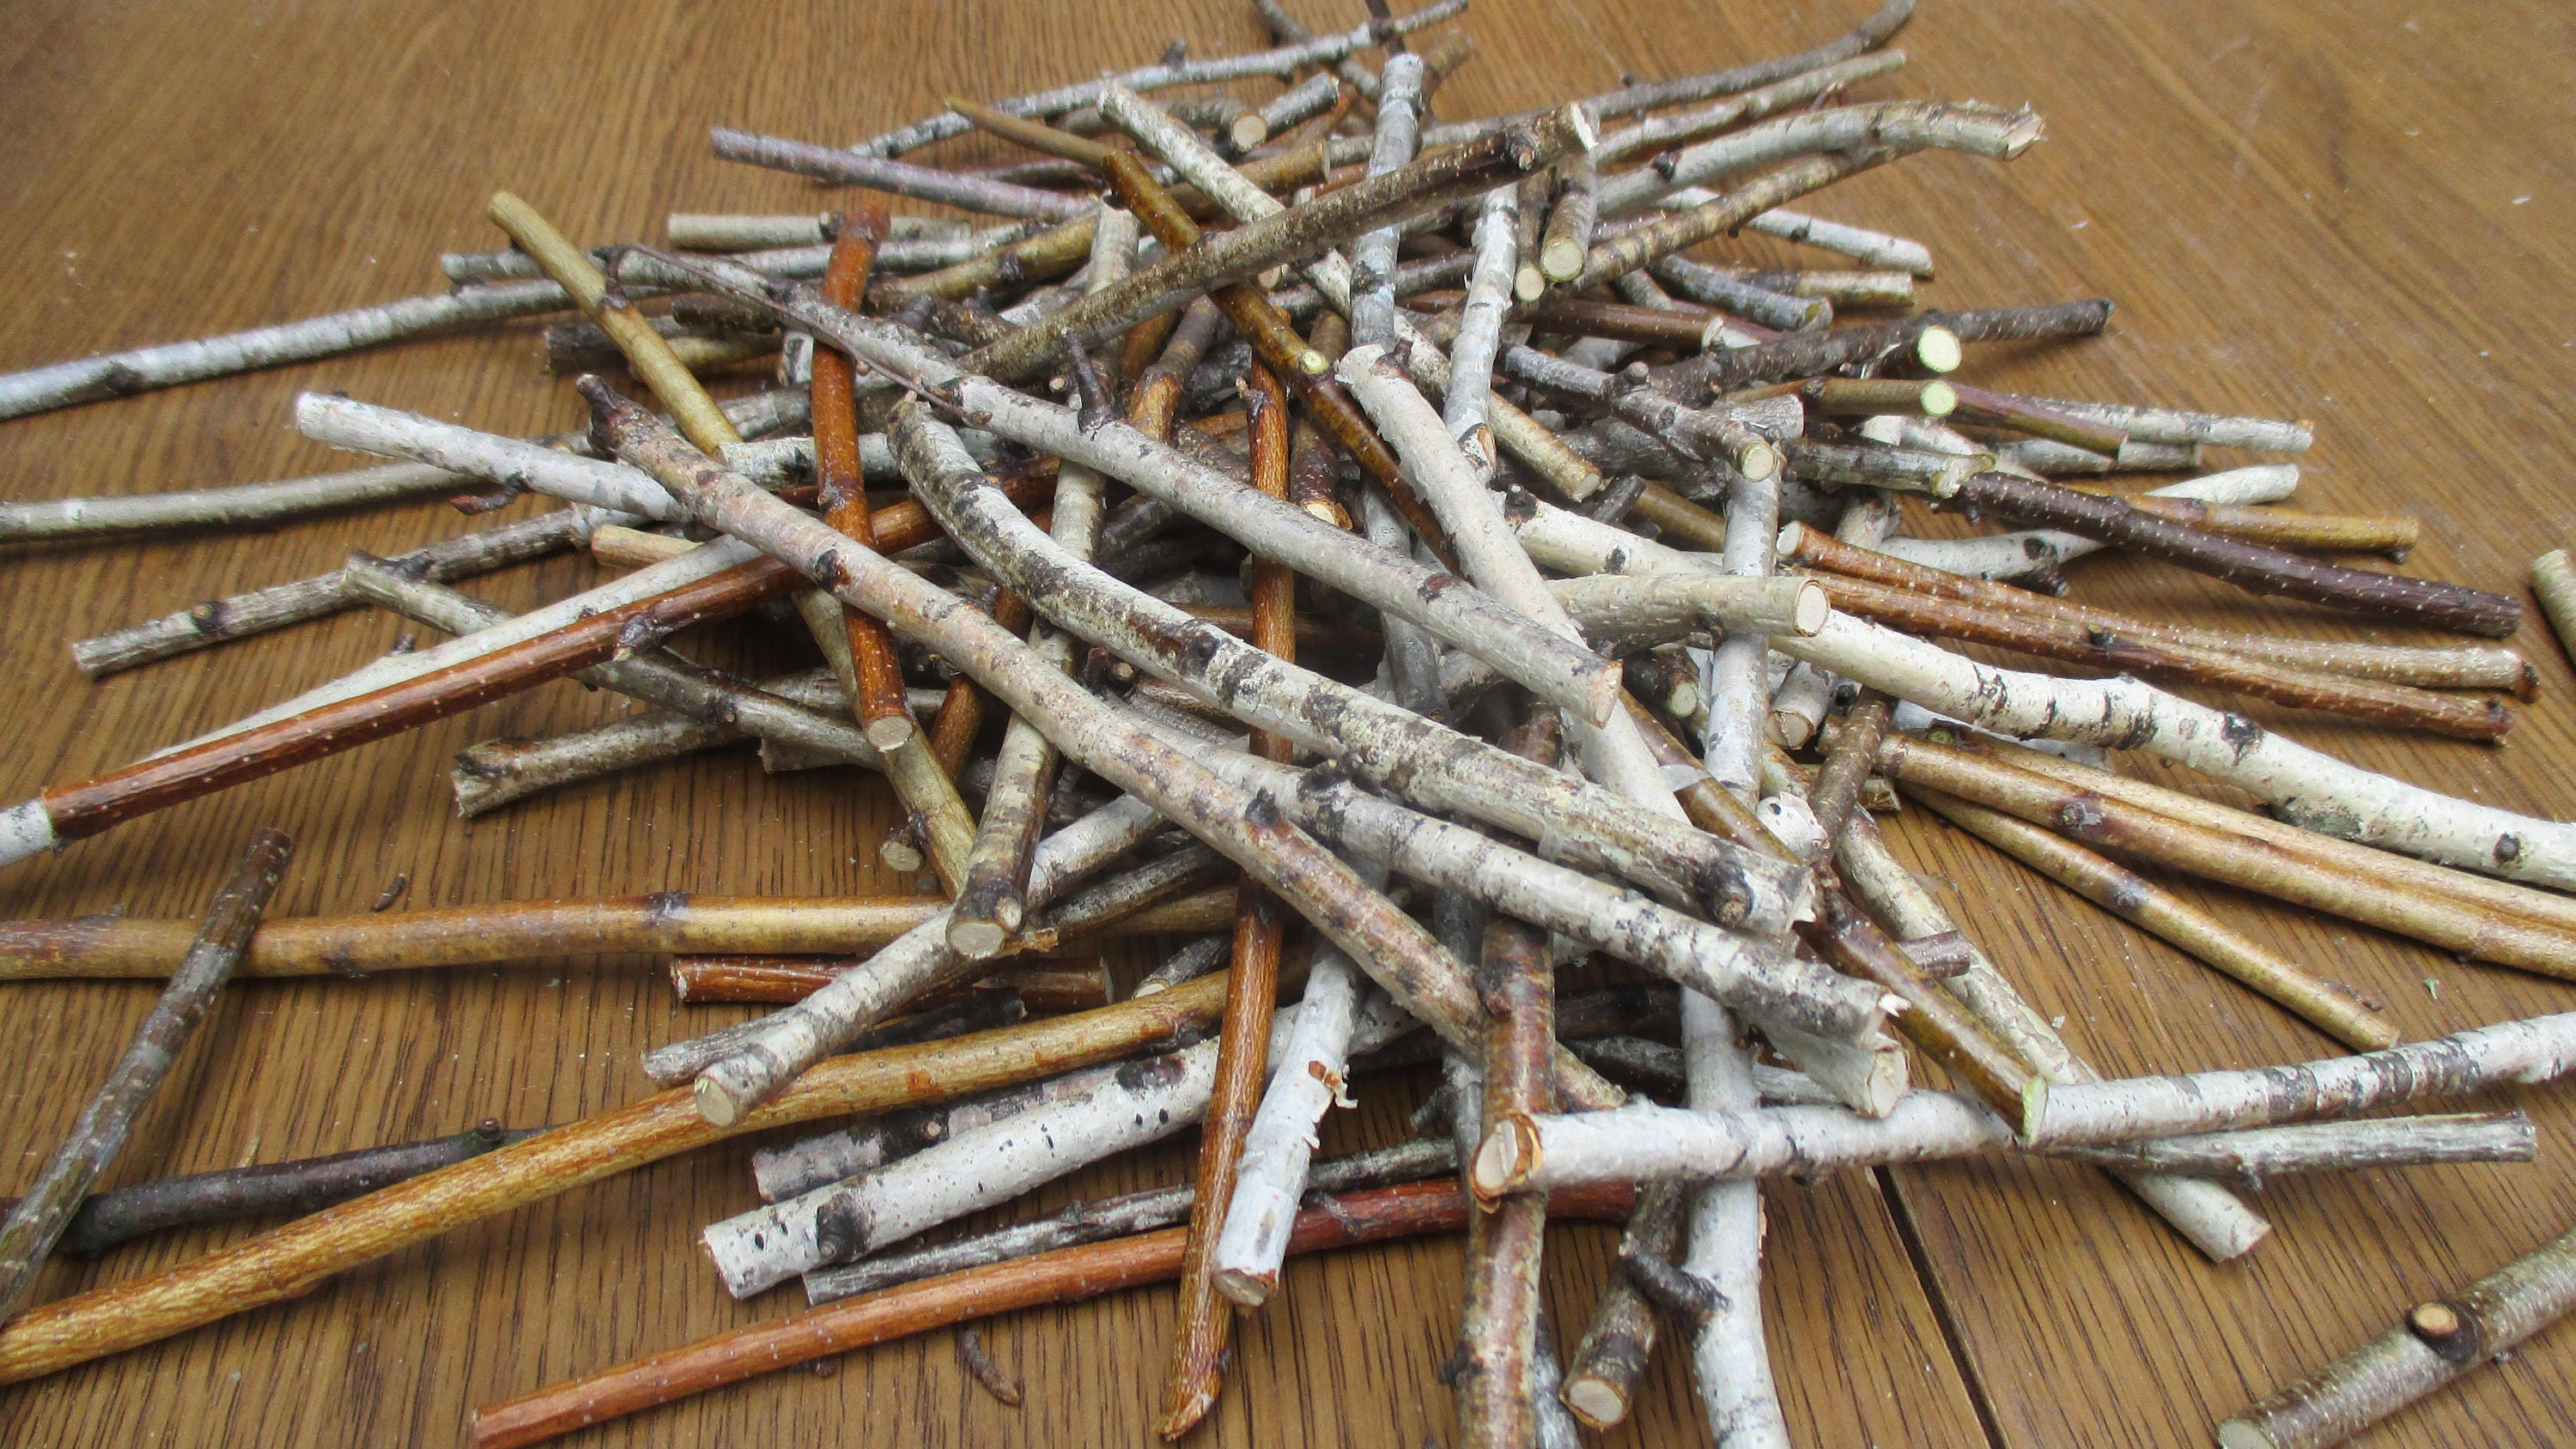 50 Small Birch Wood Sticks Birch Sticks Wood Decor Vase